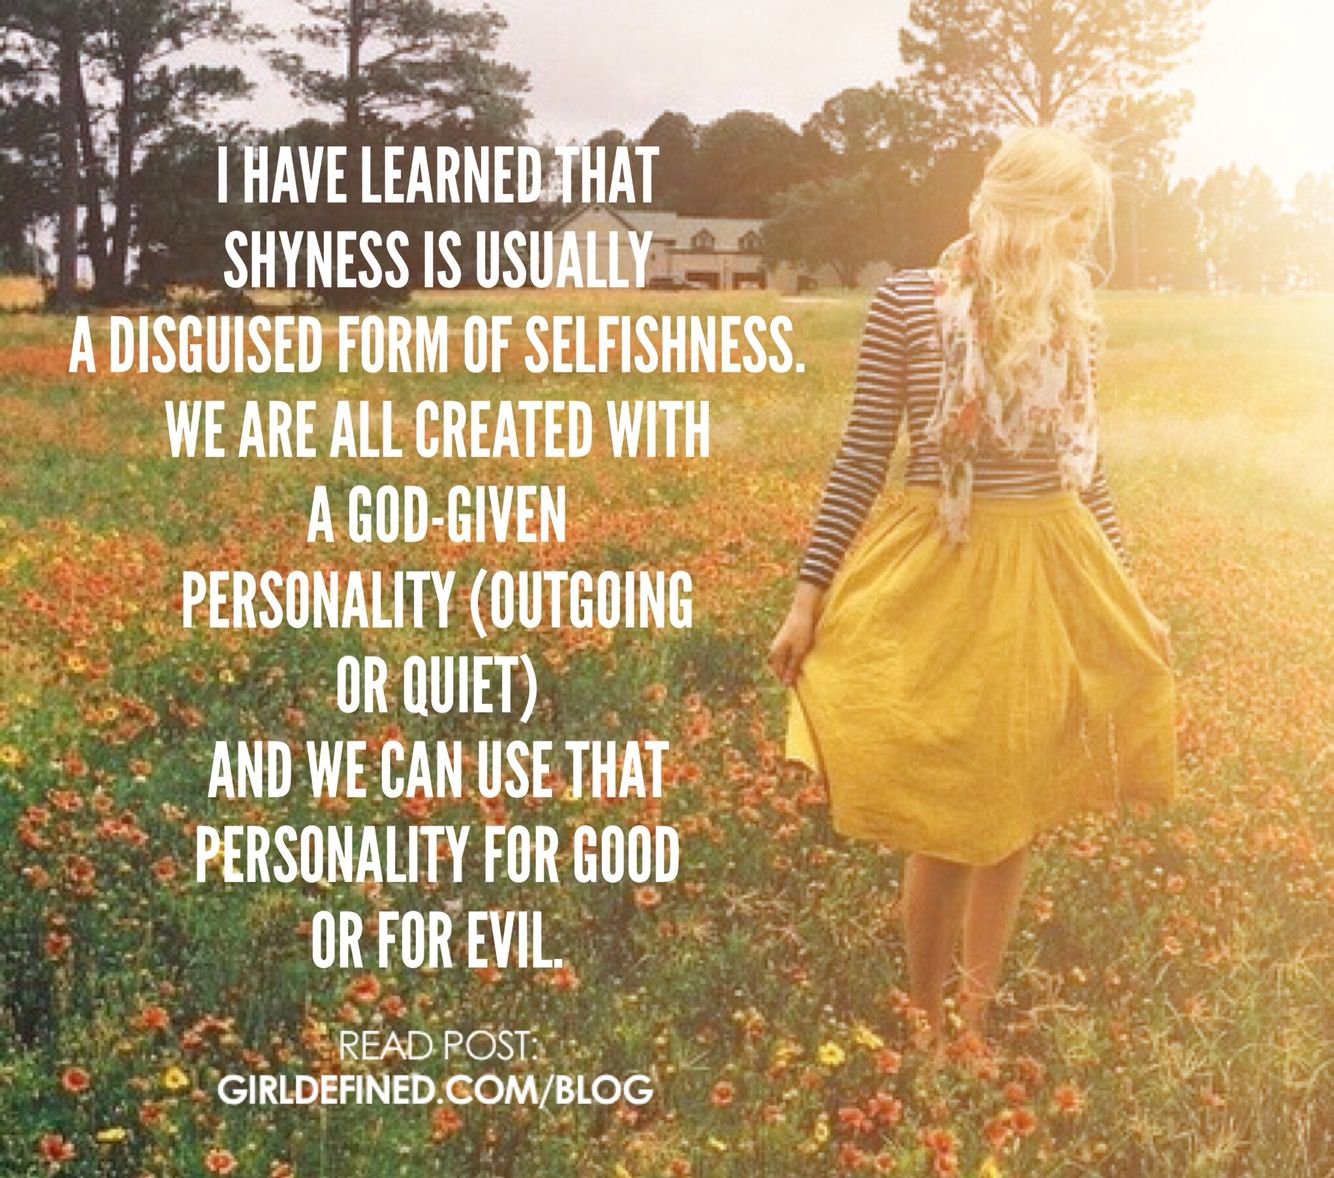 """""""I have learned that shyness is usually a disguised form of selfishness. We are all created with a God-given personality (outgoing or quiet) and we can use that personality for good or for evil."""" -Ellissa Baird"""